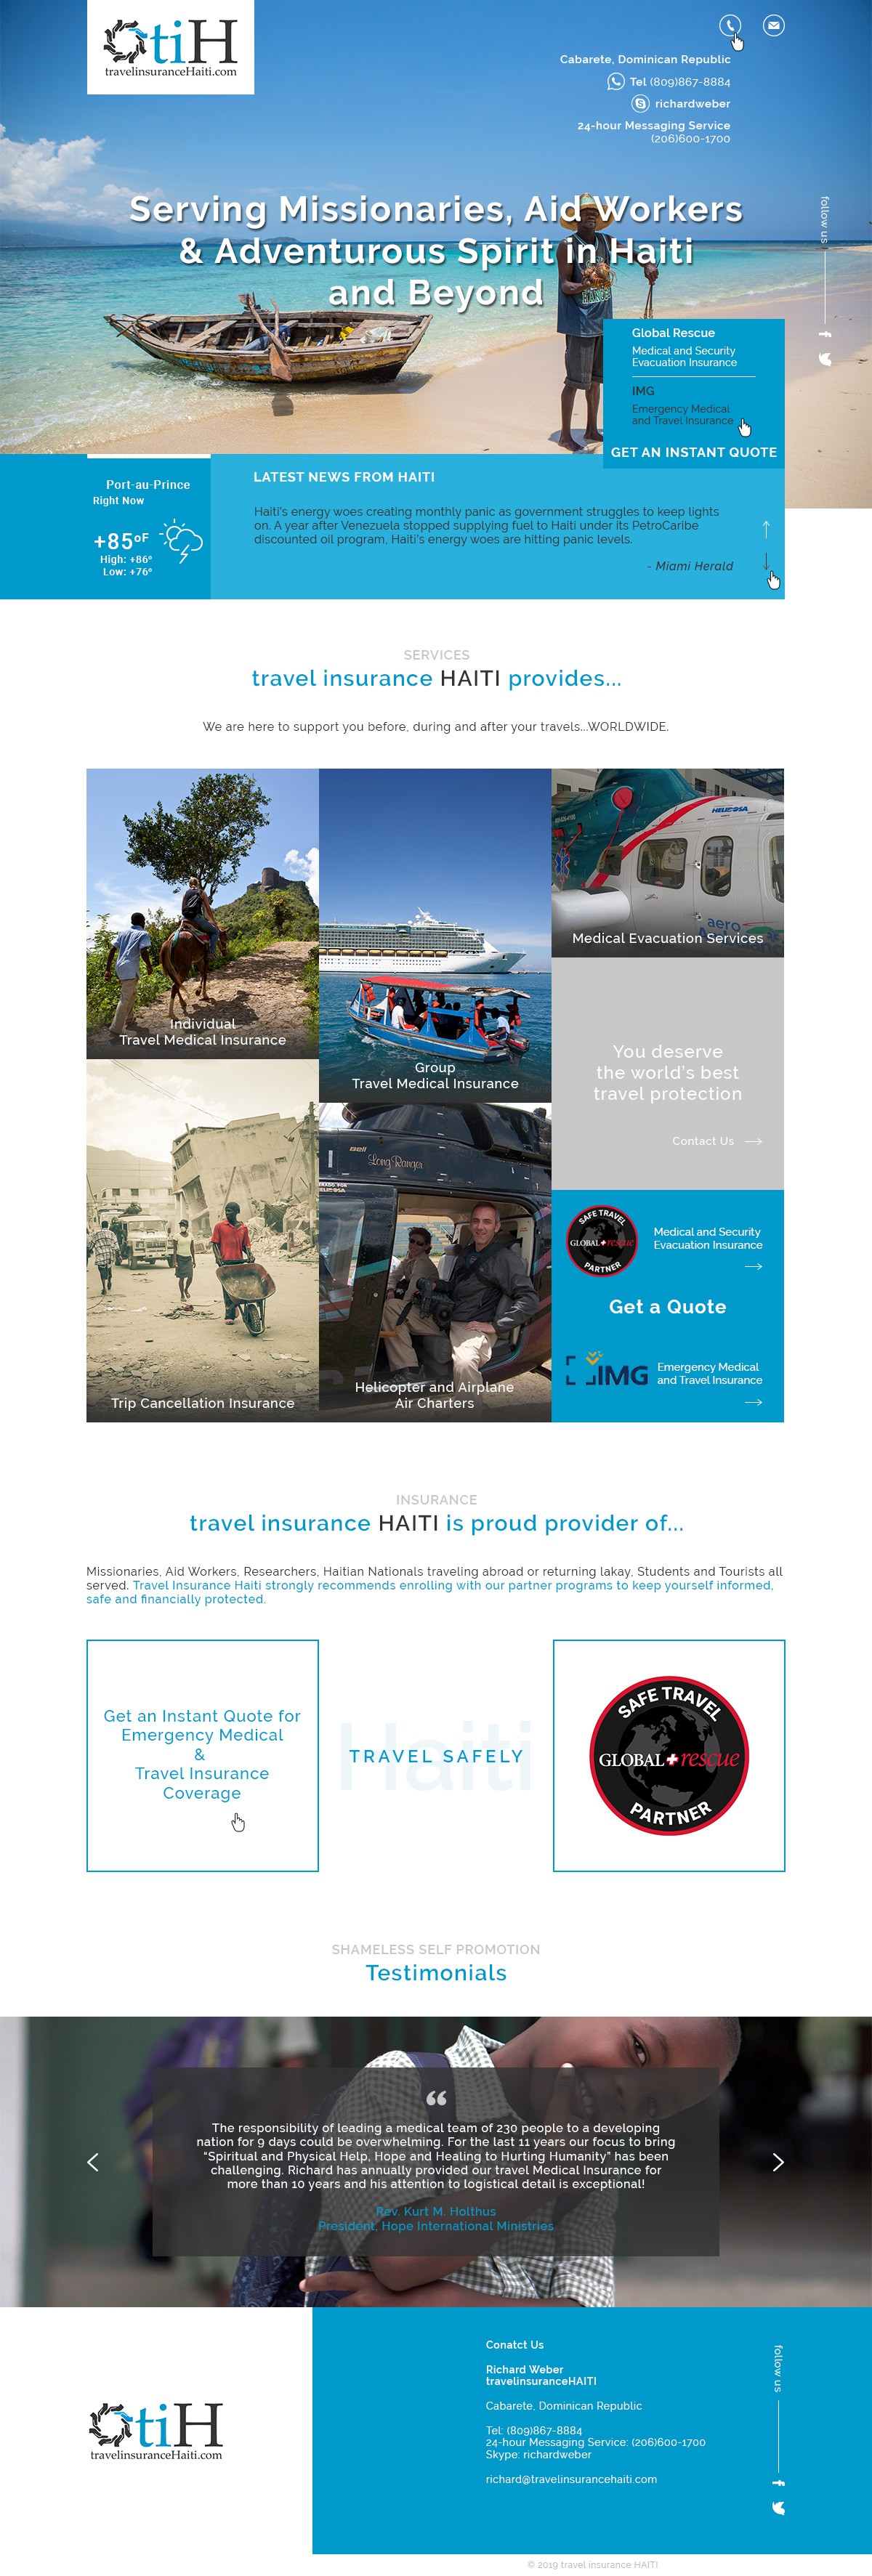 Design a Static Landing Page for Travel Insurance Haiti